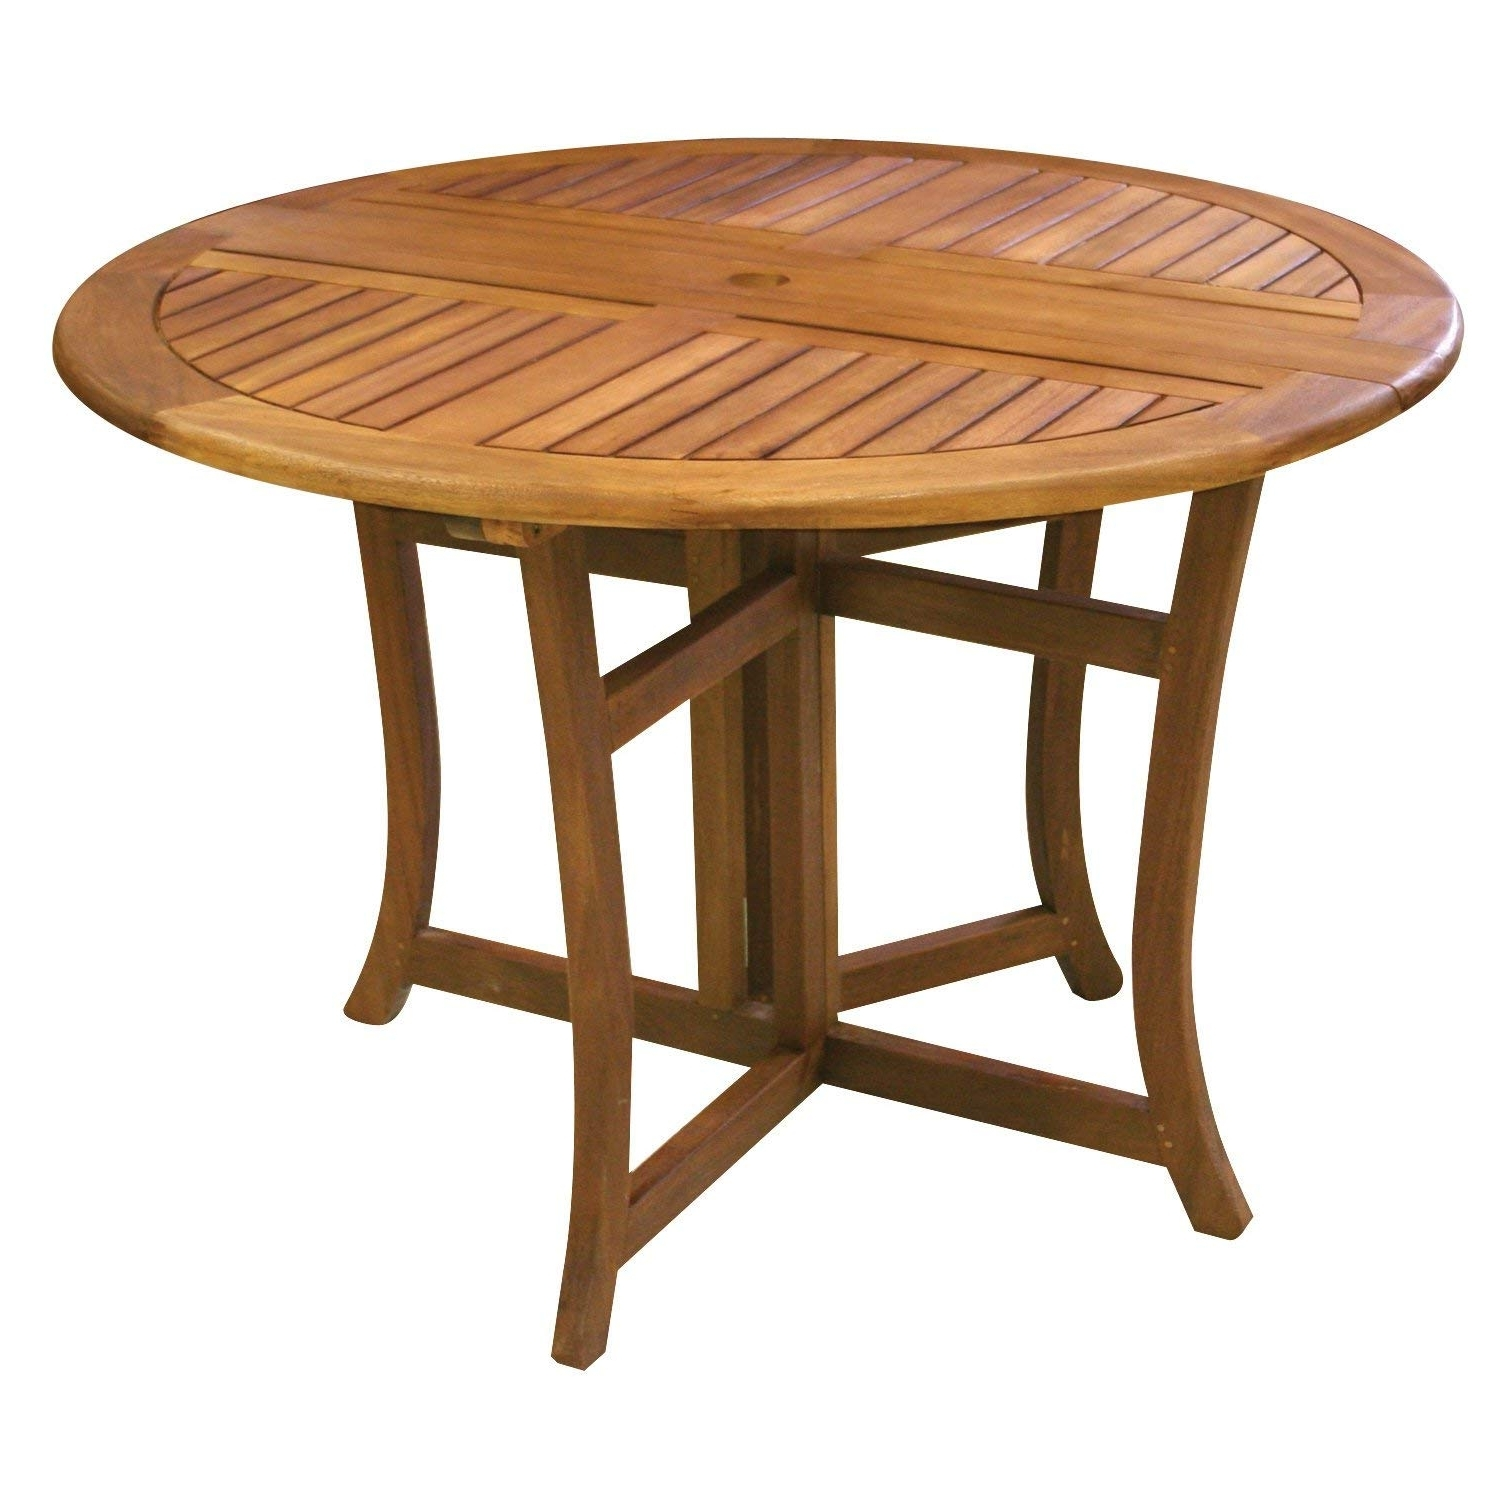 Best And Newest Wood Folding Dining Tables In Amazon : Eucalyptus 43 Inch Round Folding Deck Table : Patio (View 6 of 25)